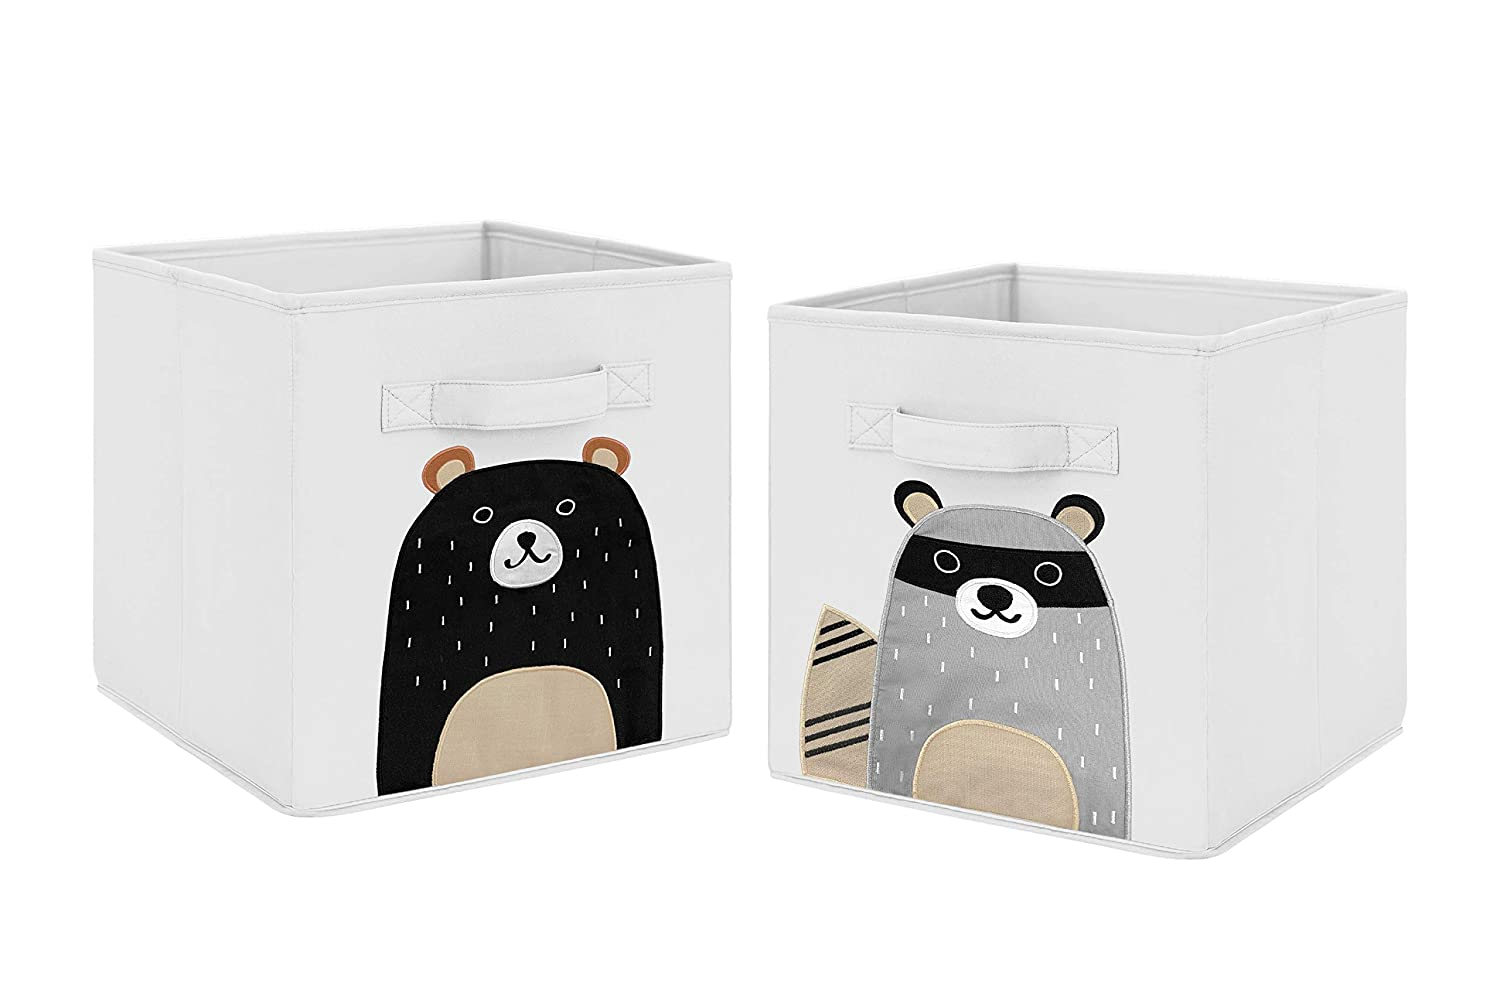 Sweet Jojo Designs Bear Raccoon Forest Animal Foldable Fabric Storage Cube Bins Boxes Organizer Toys Kids Baby Childrens for Woodland Pals Collection - Set of 2 - Neutral Beige, Grey, Black and White